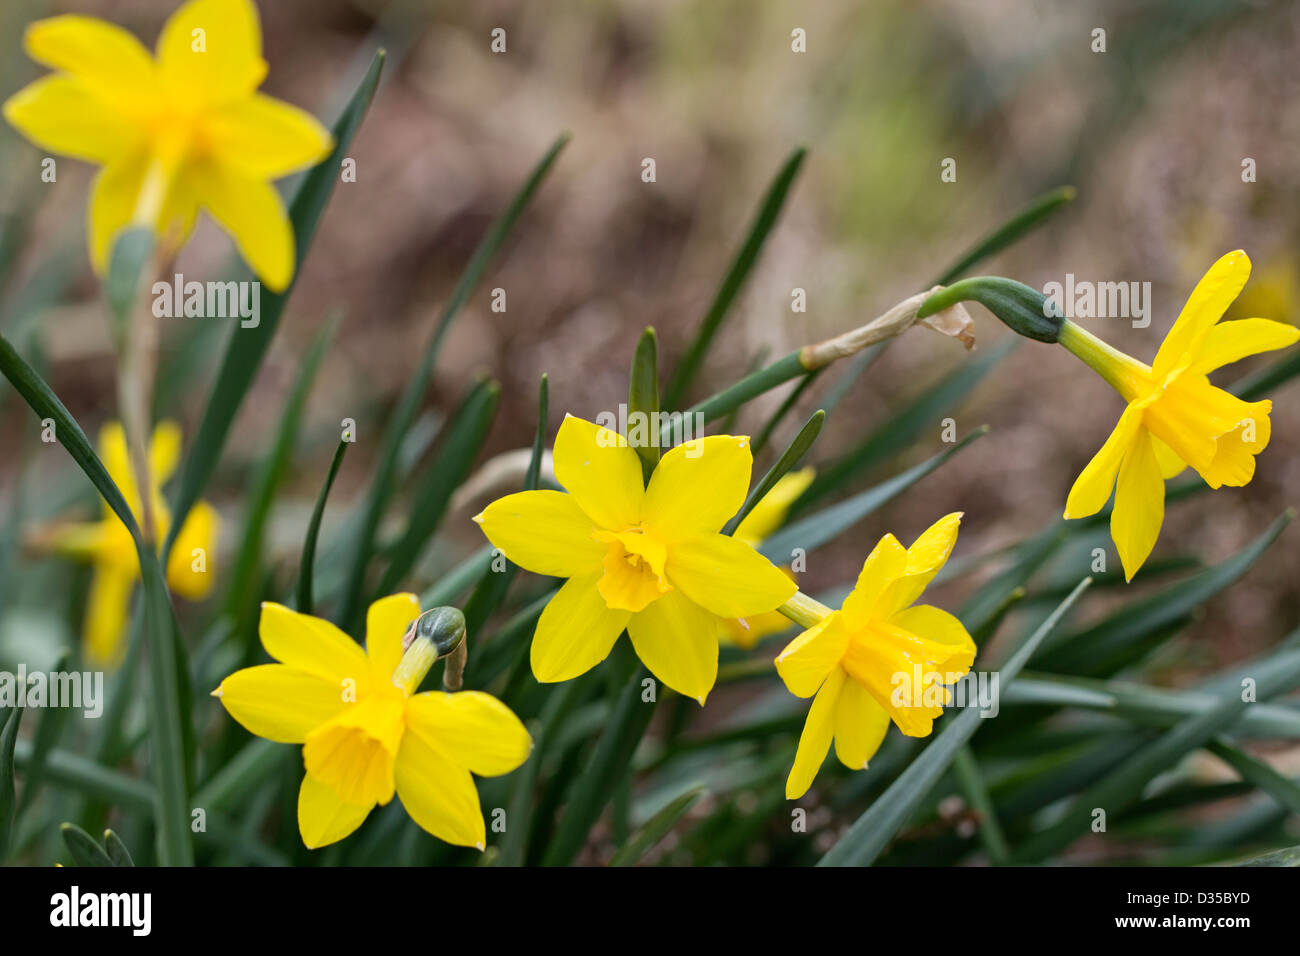 Narcissus 'Sweetness' - Stock Image